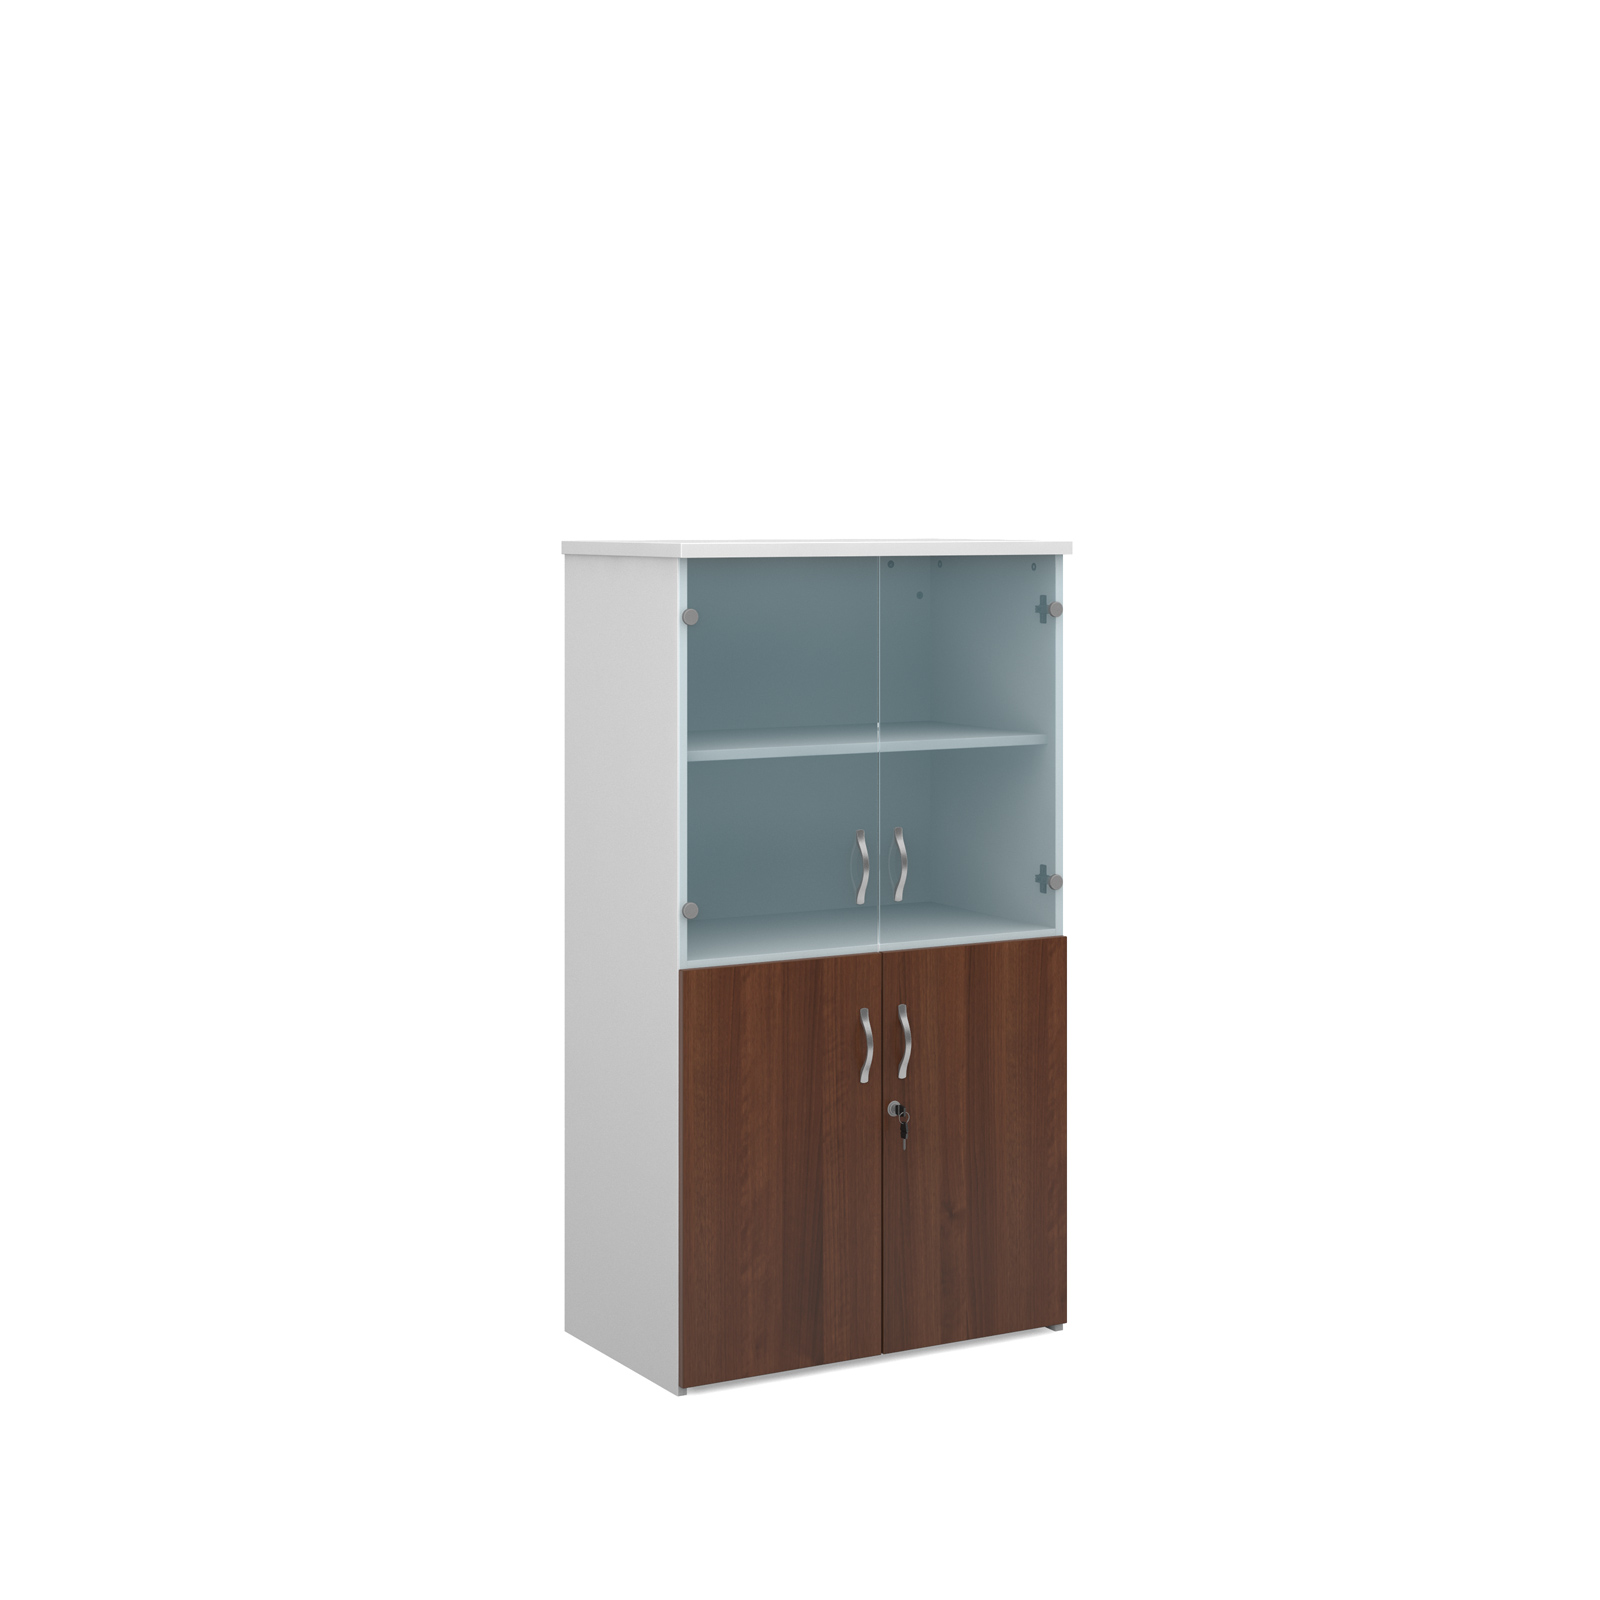 1440mm high combination unit with glass and wood doors in walnut and white